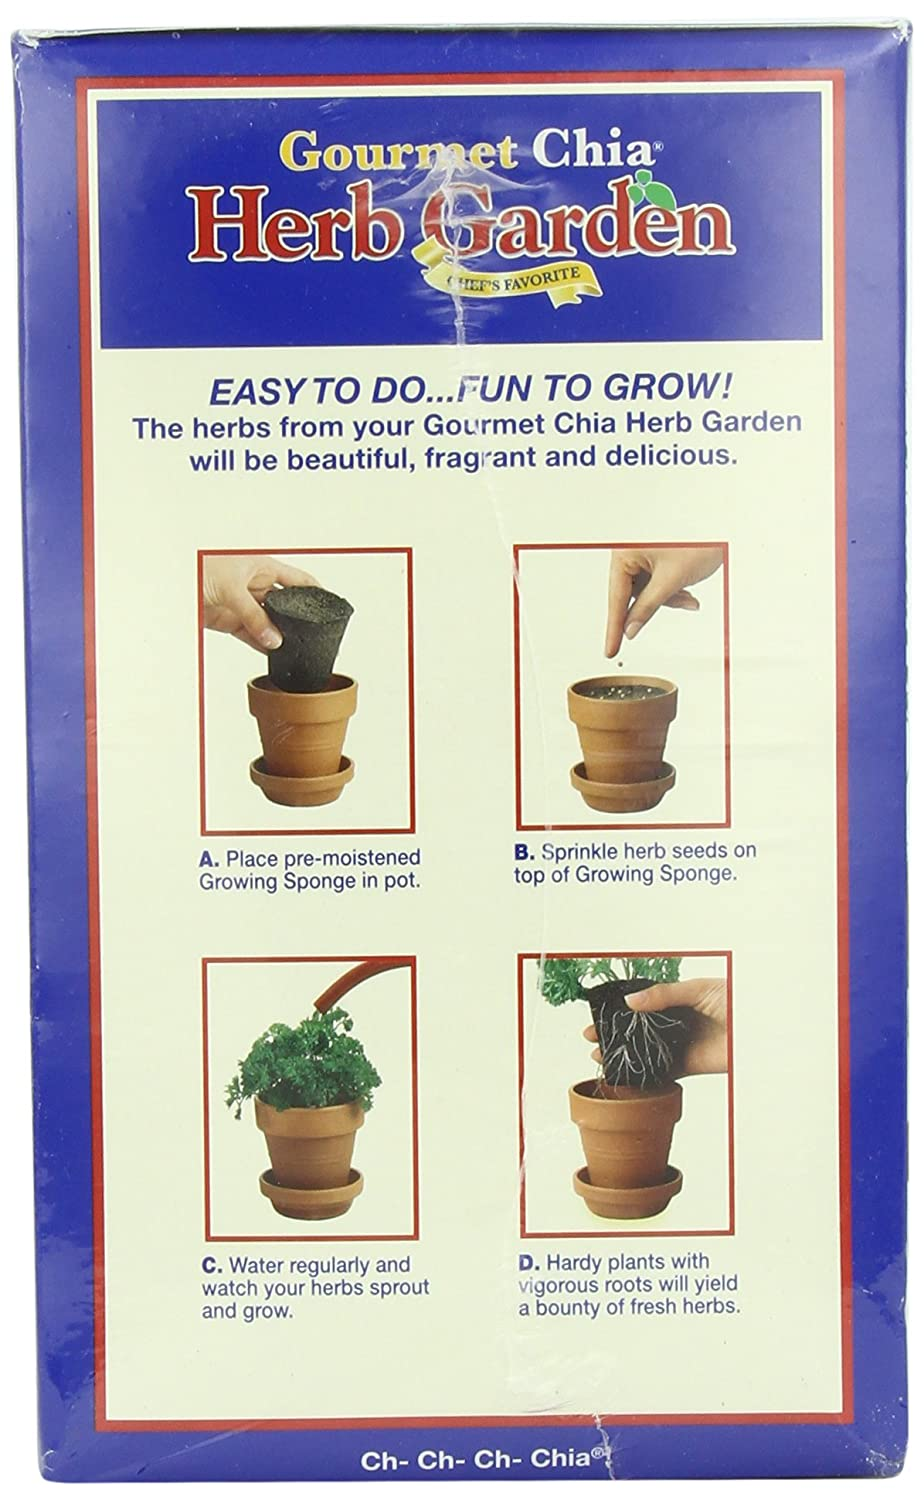 Chia pet herb garden - Amazon Com Chia Gourmet Herb Garden Plant Germination Kits Garden Outdoor